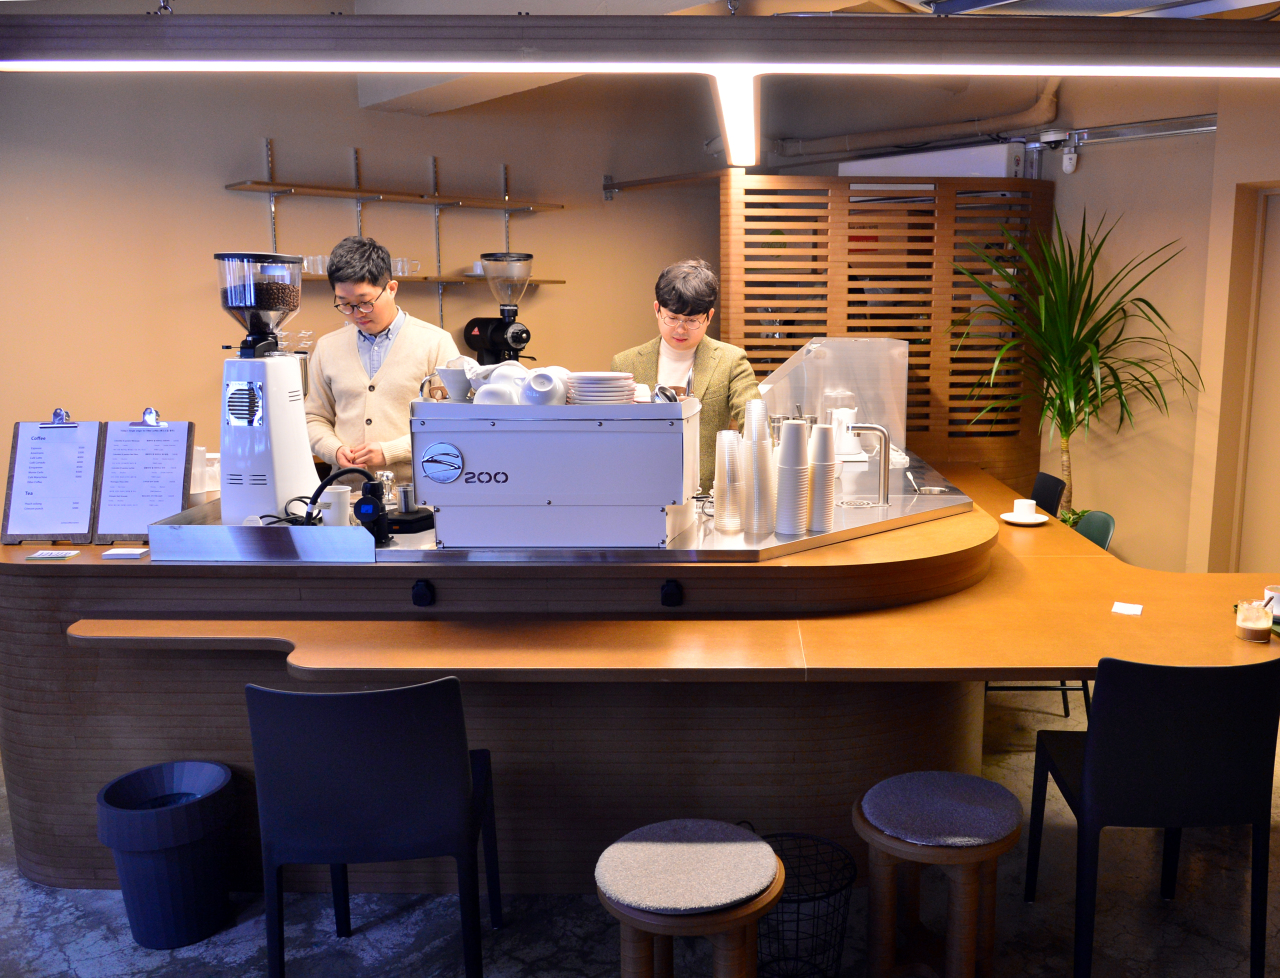 Brothers Ko Tae-young (right) and Ko Young-soo put the spotlight on small-batch brews at Vinter Coffee Bar. (Park Hyun-koo/The Korea Herald)